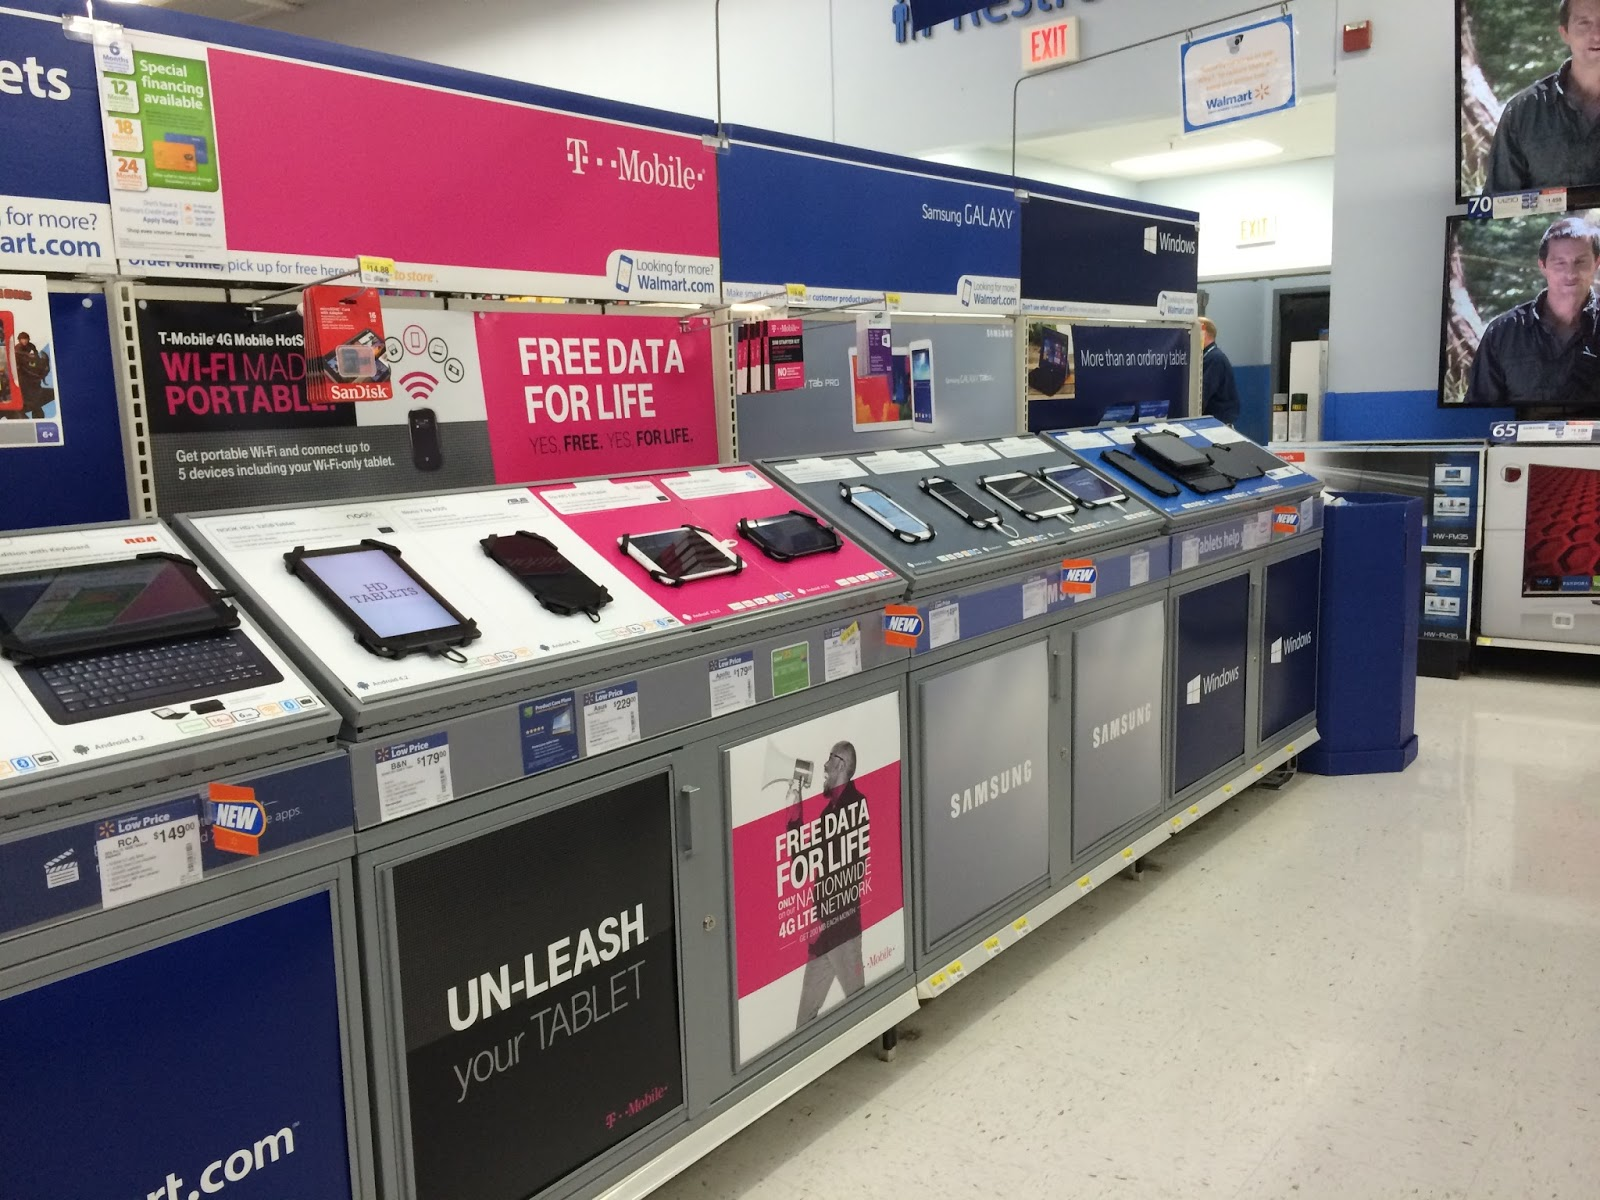 walmart_tablets TMobile Free Data  #TabletTrio #CollectiveBias #shop